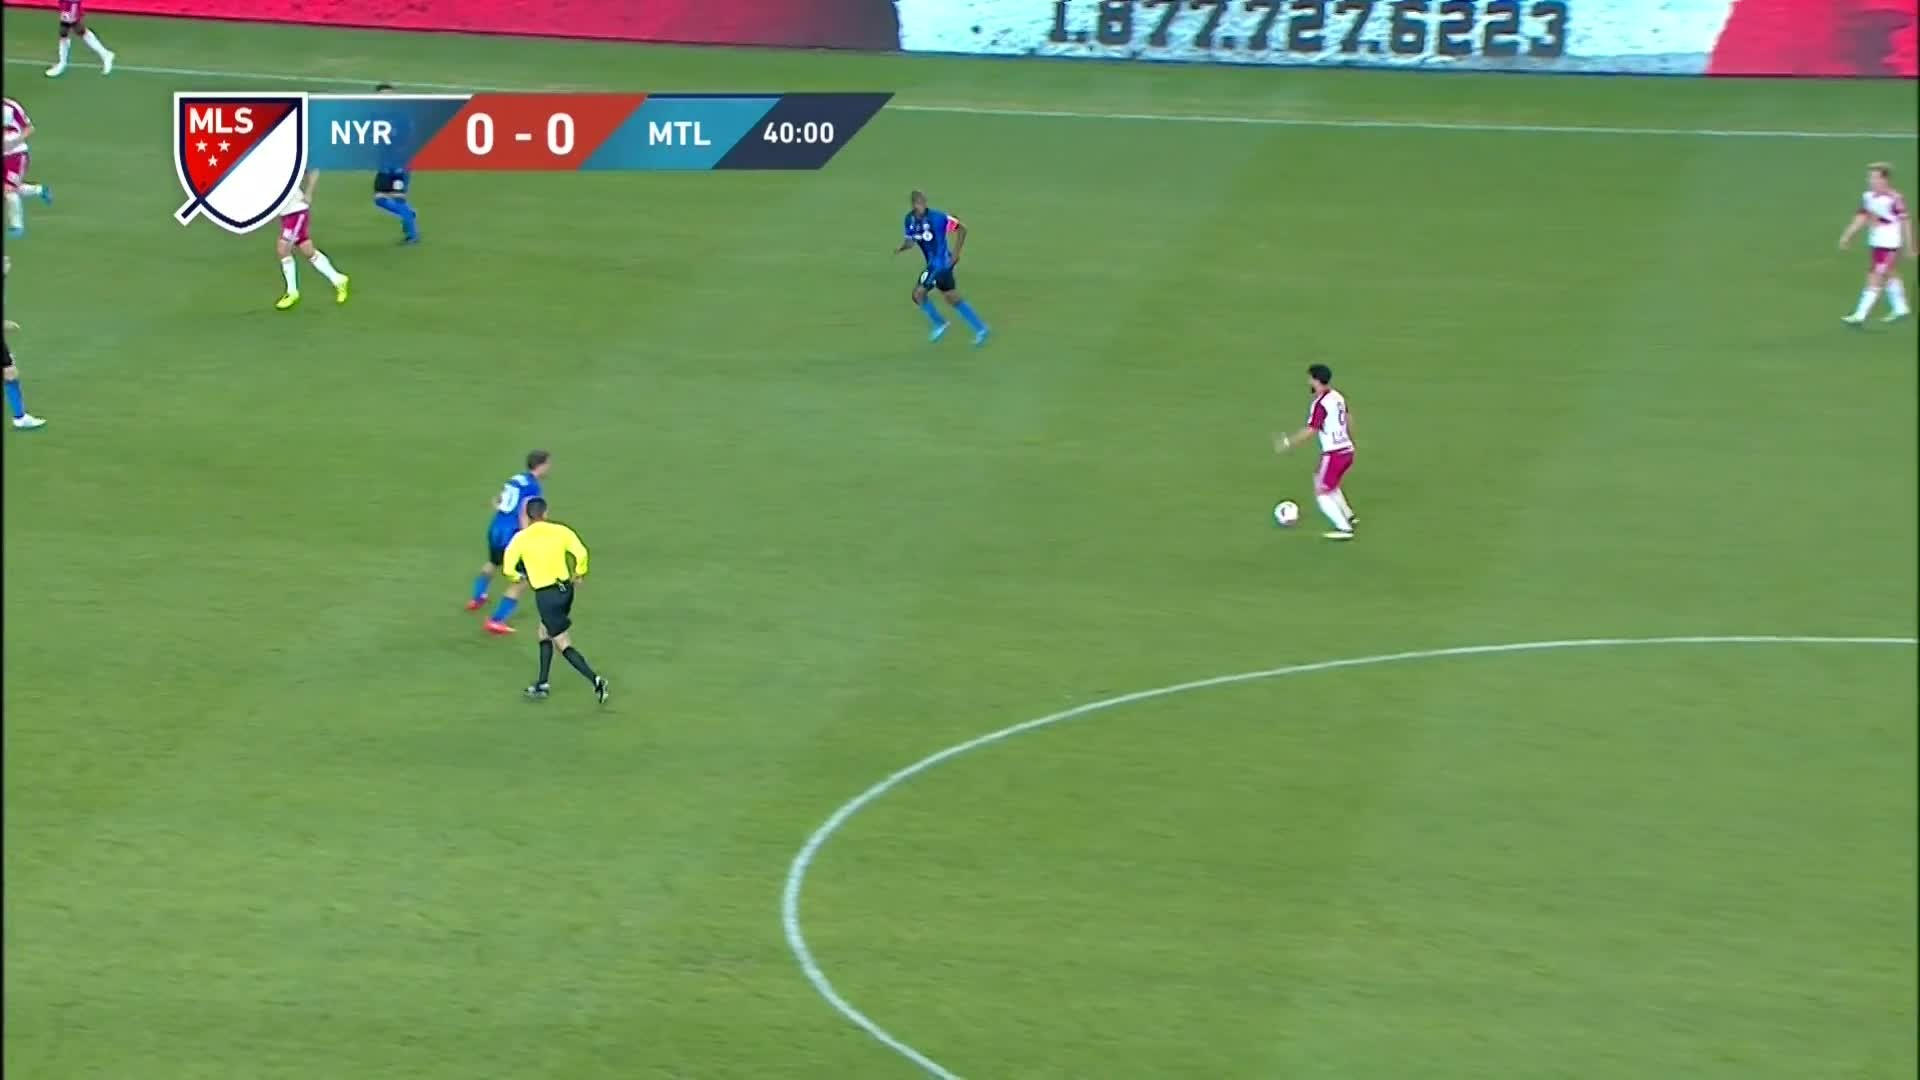 1920x1080 Highlights of the MLS match between New York Red Bulls and Montreal Impact